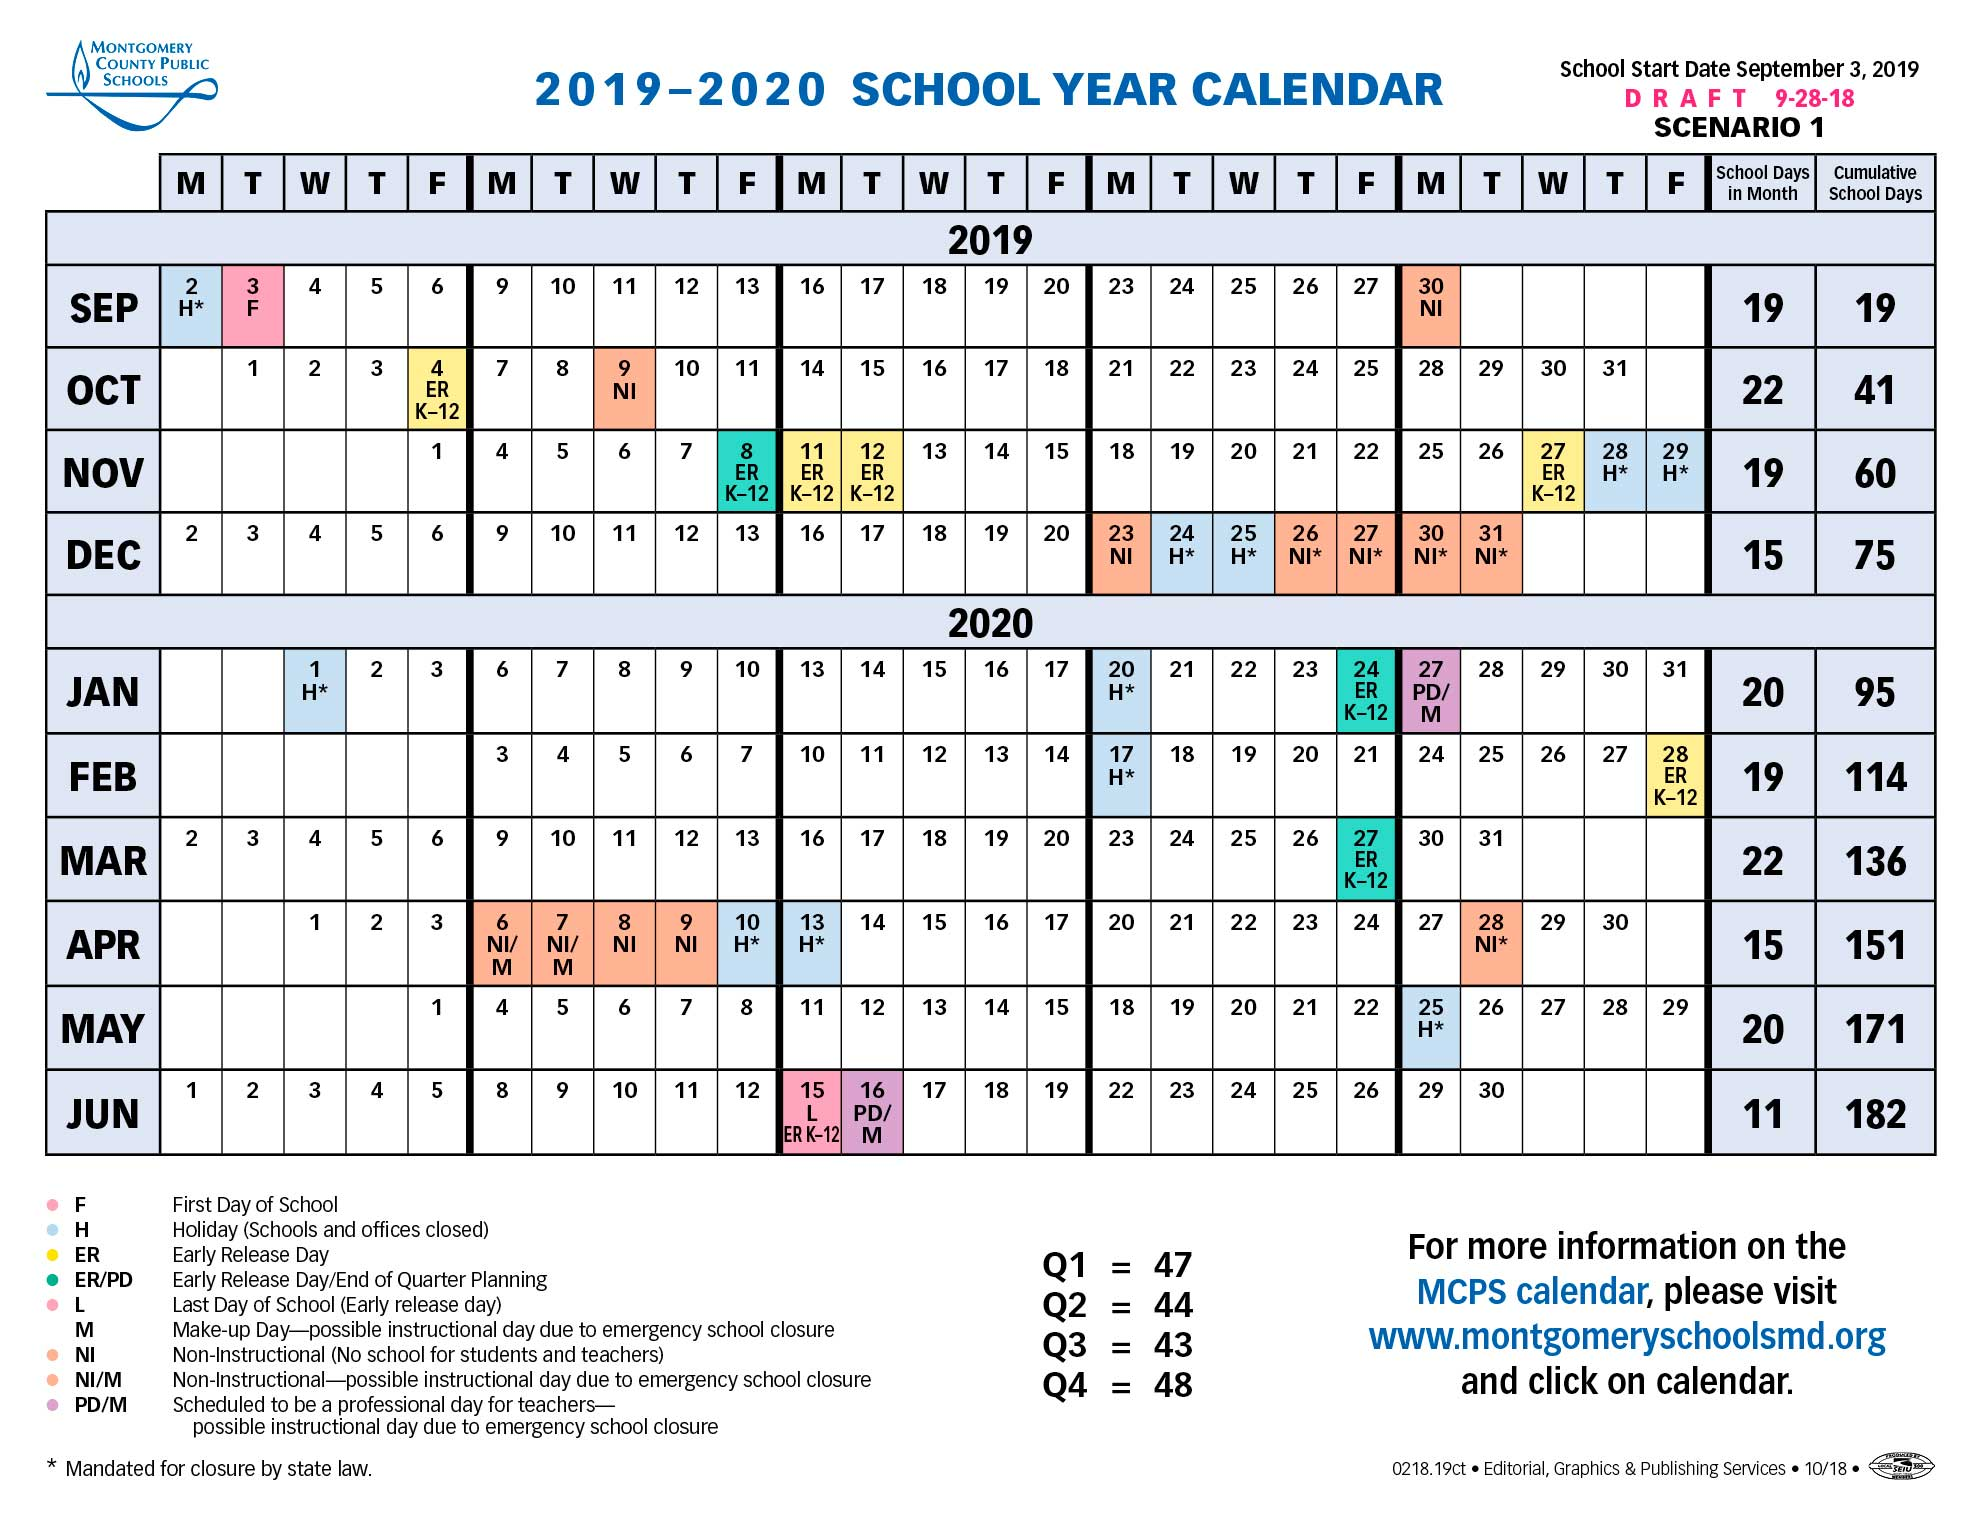 School Calendar 2020 Usa Proposed Calendar 2019 2020   Montgomery County Public Schools